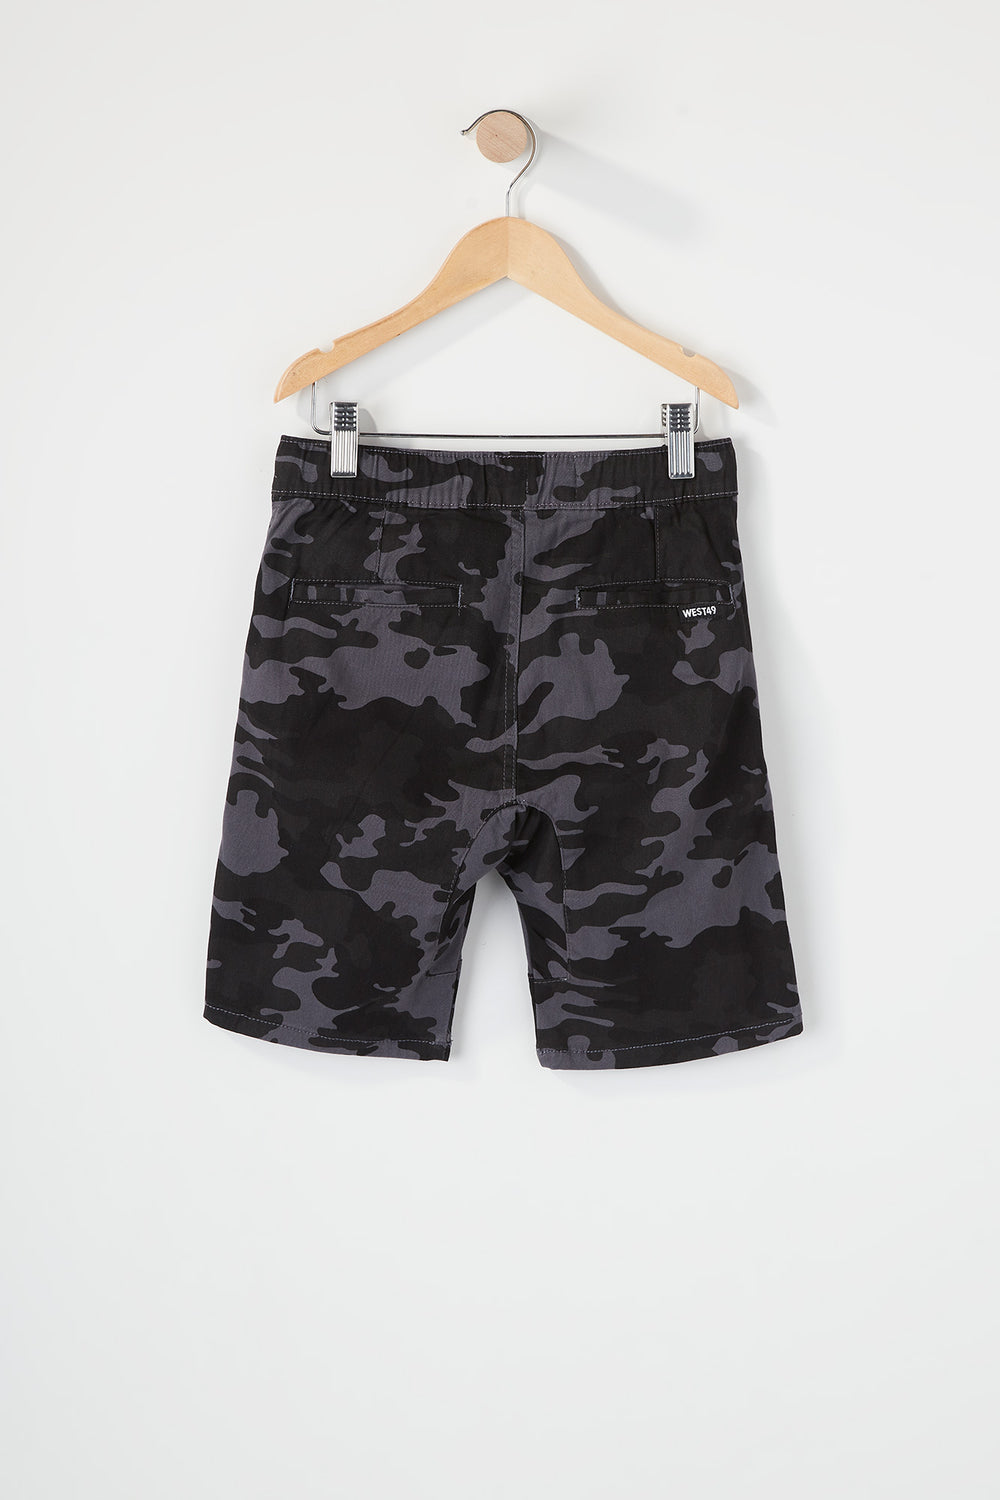 West49 Boys Camo Jogger Short Gingham